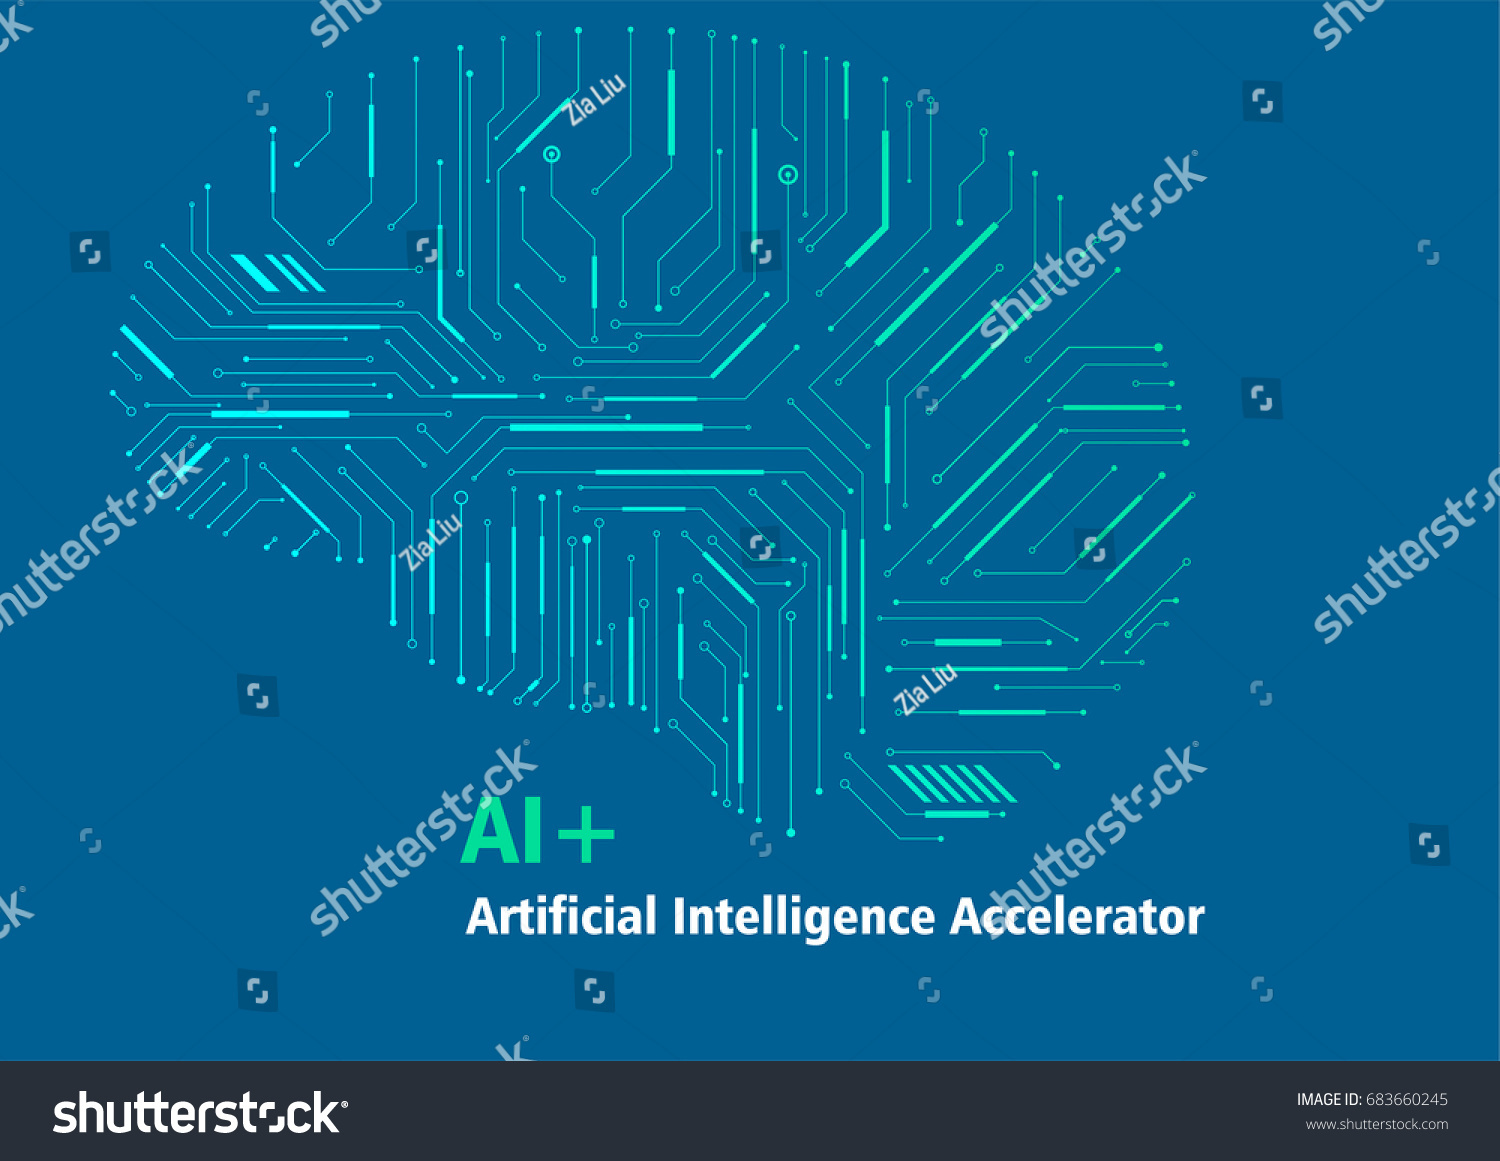 Circuit diagram style brain science vector background, meaning artificial  intelligence